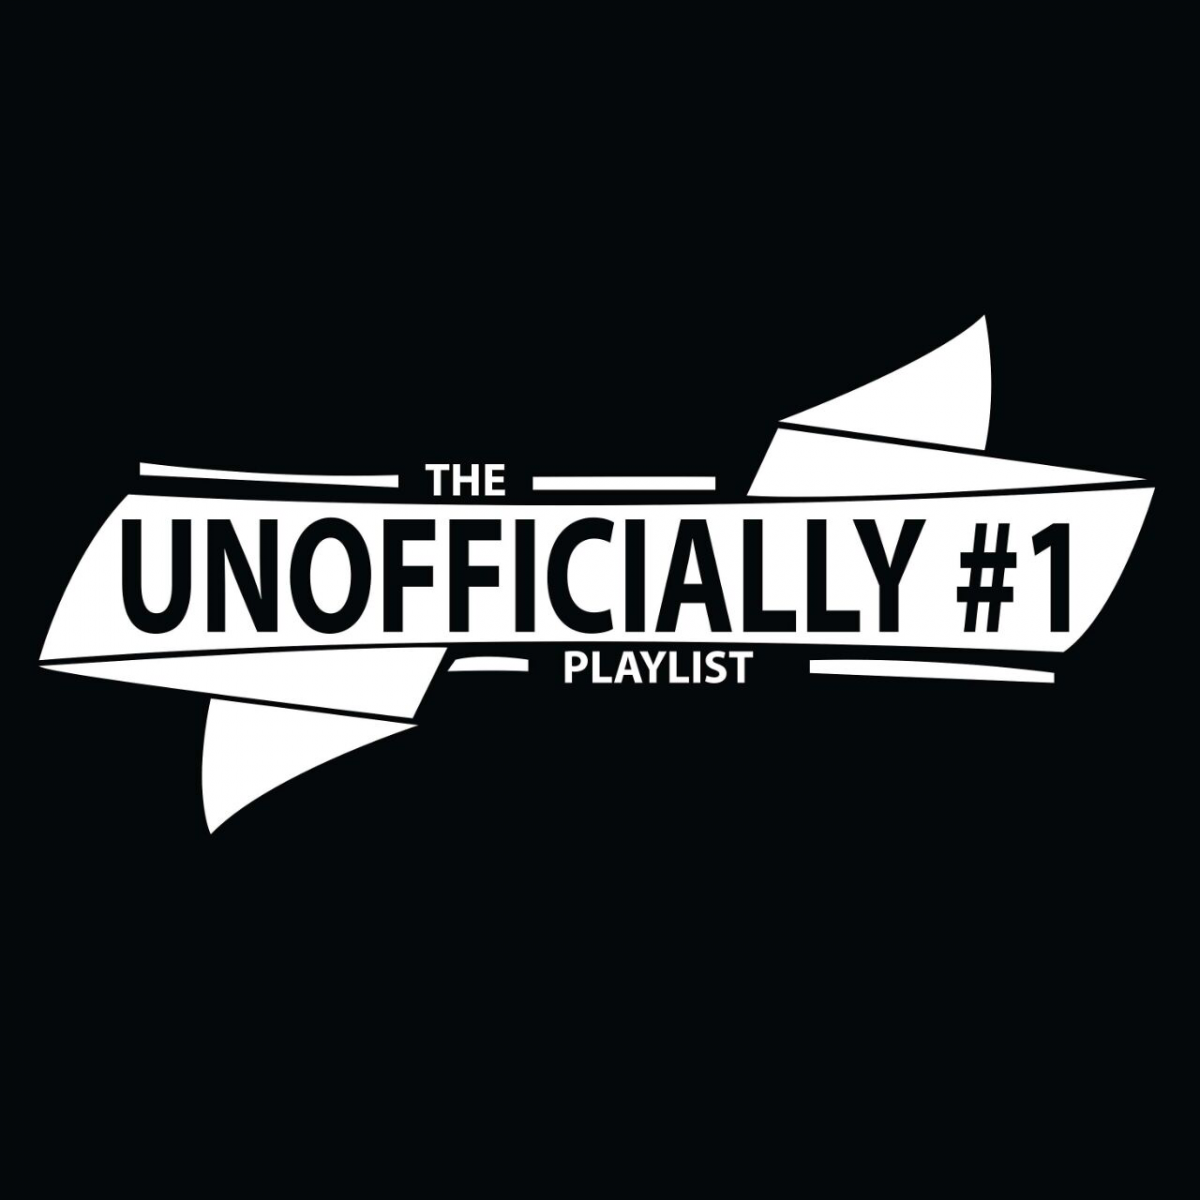 Unofficially no.1 playlist vol.2